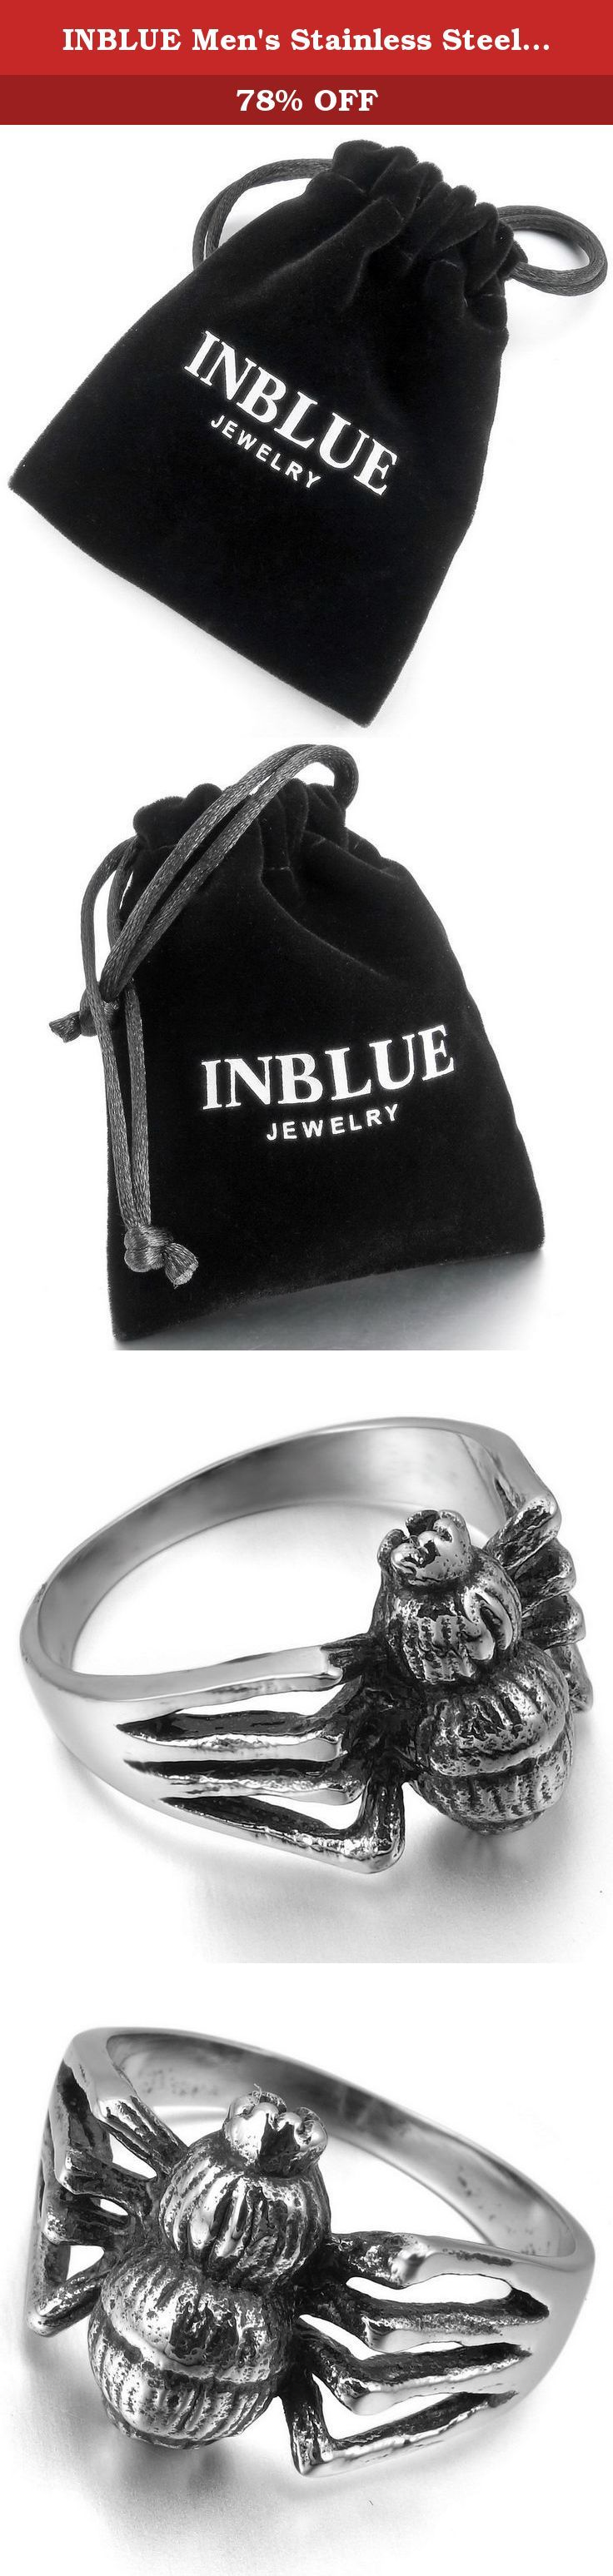 INBLUE Men's Stainless Steel Ring Silver Tone Black Spider Size9. INBLUE - High quality Jewelry Discover the INBLUE Collection of jewelry. The selection of high-quality jewelry featured in the INBLUE Collection offers Great values at affordable Price, they mainly made of high quality Stainless Steel, Tungsten, Silver and Leather. Find a special gift for a loved one or a beautiful piece that complements your personal style with jewelry from the INBLUE Collection. .